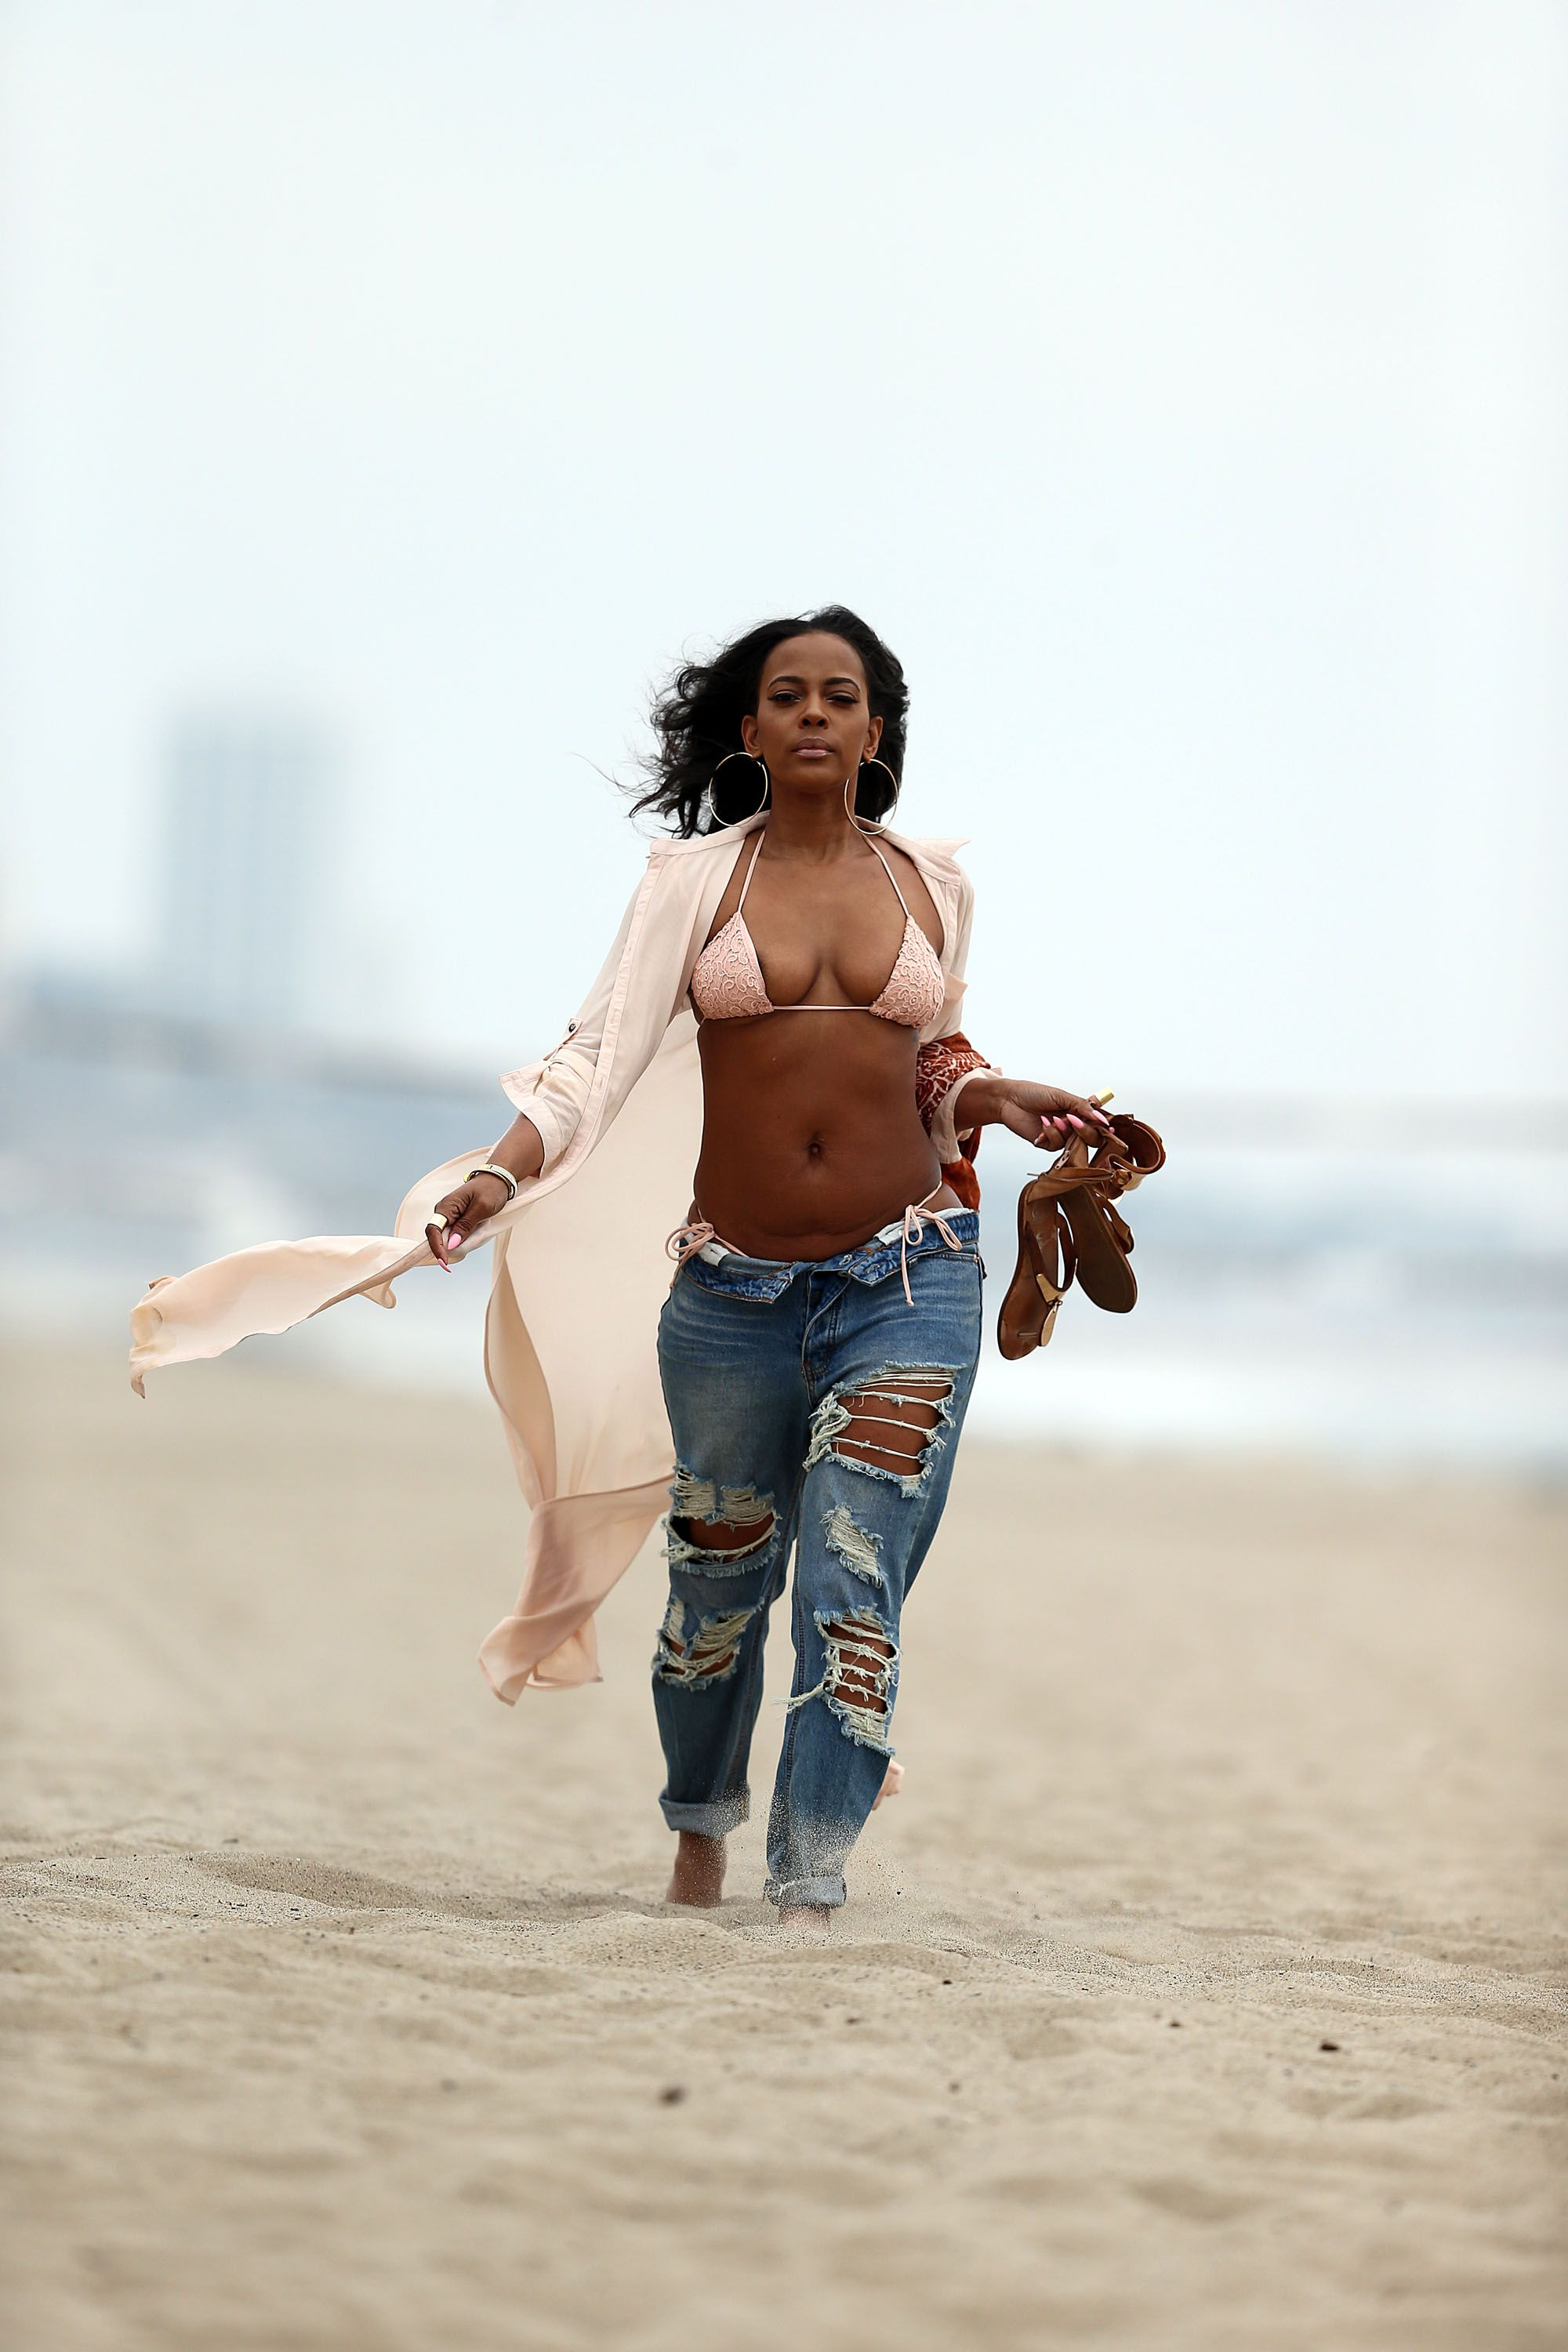 Reality Star nipples exposed